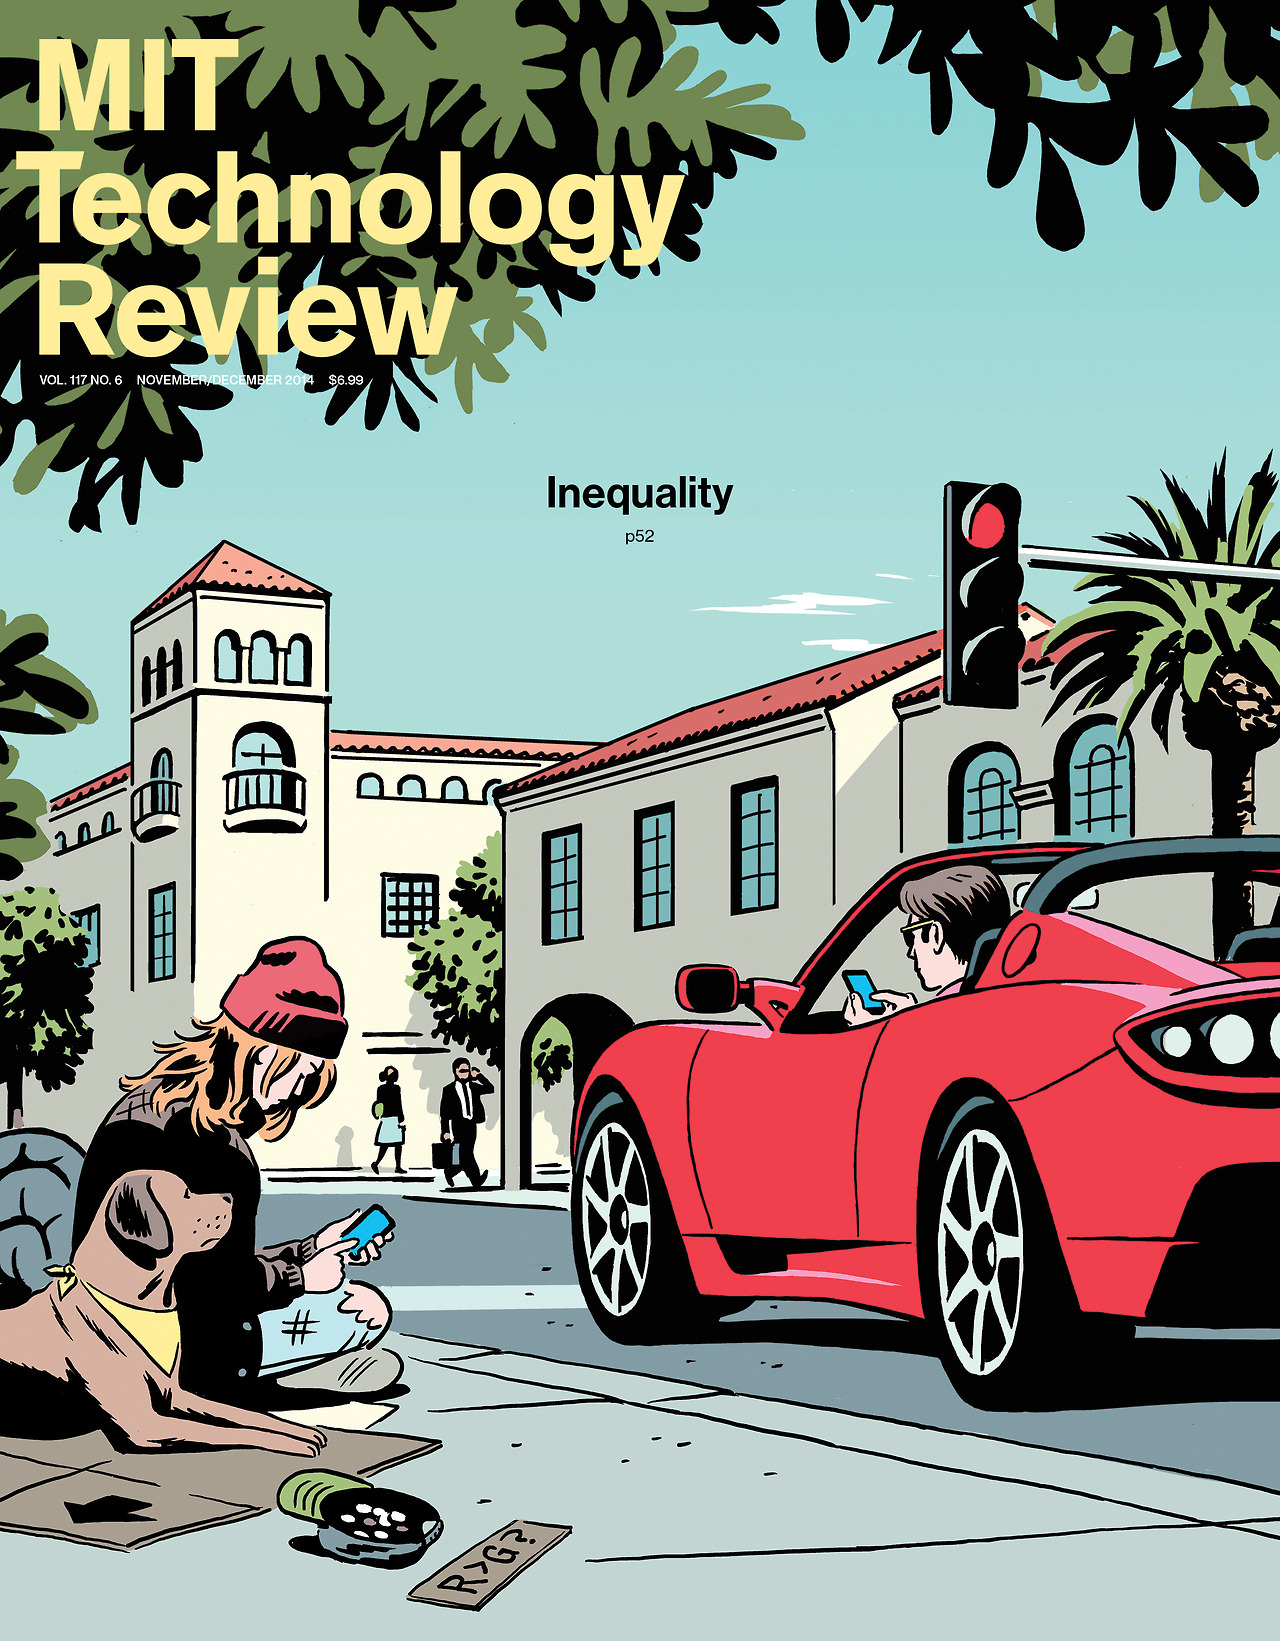 Cover of MIT Review edition of November 2014